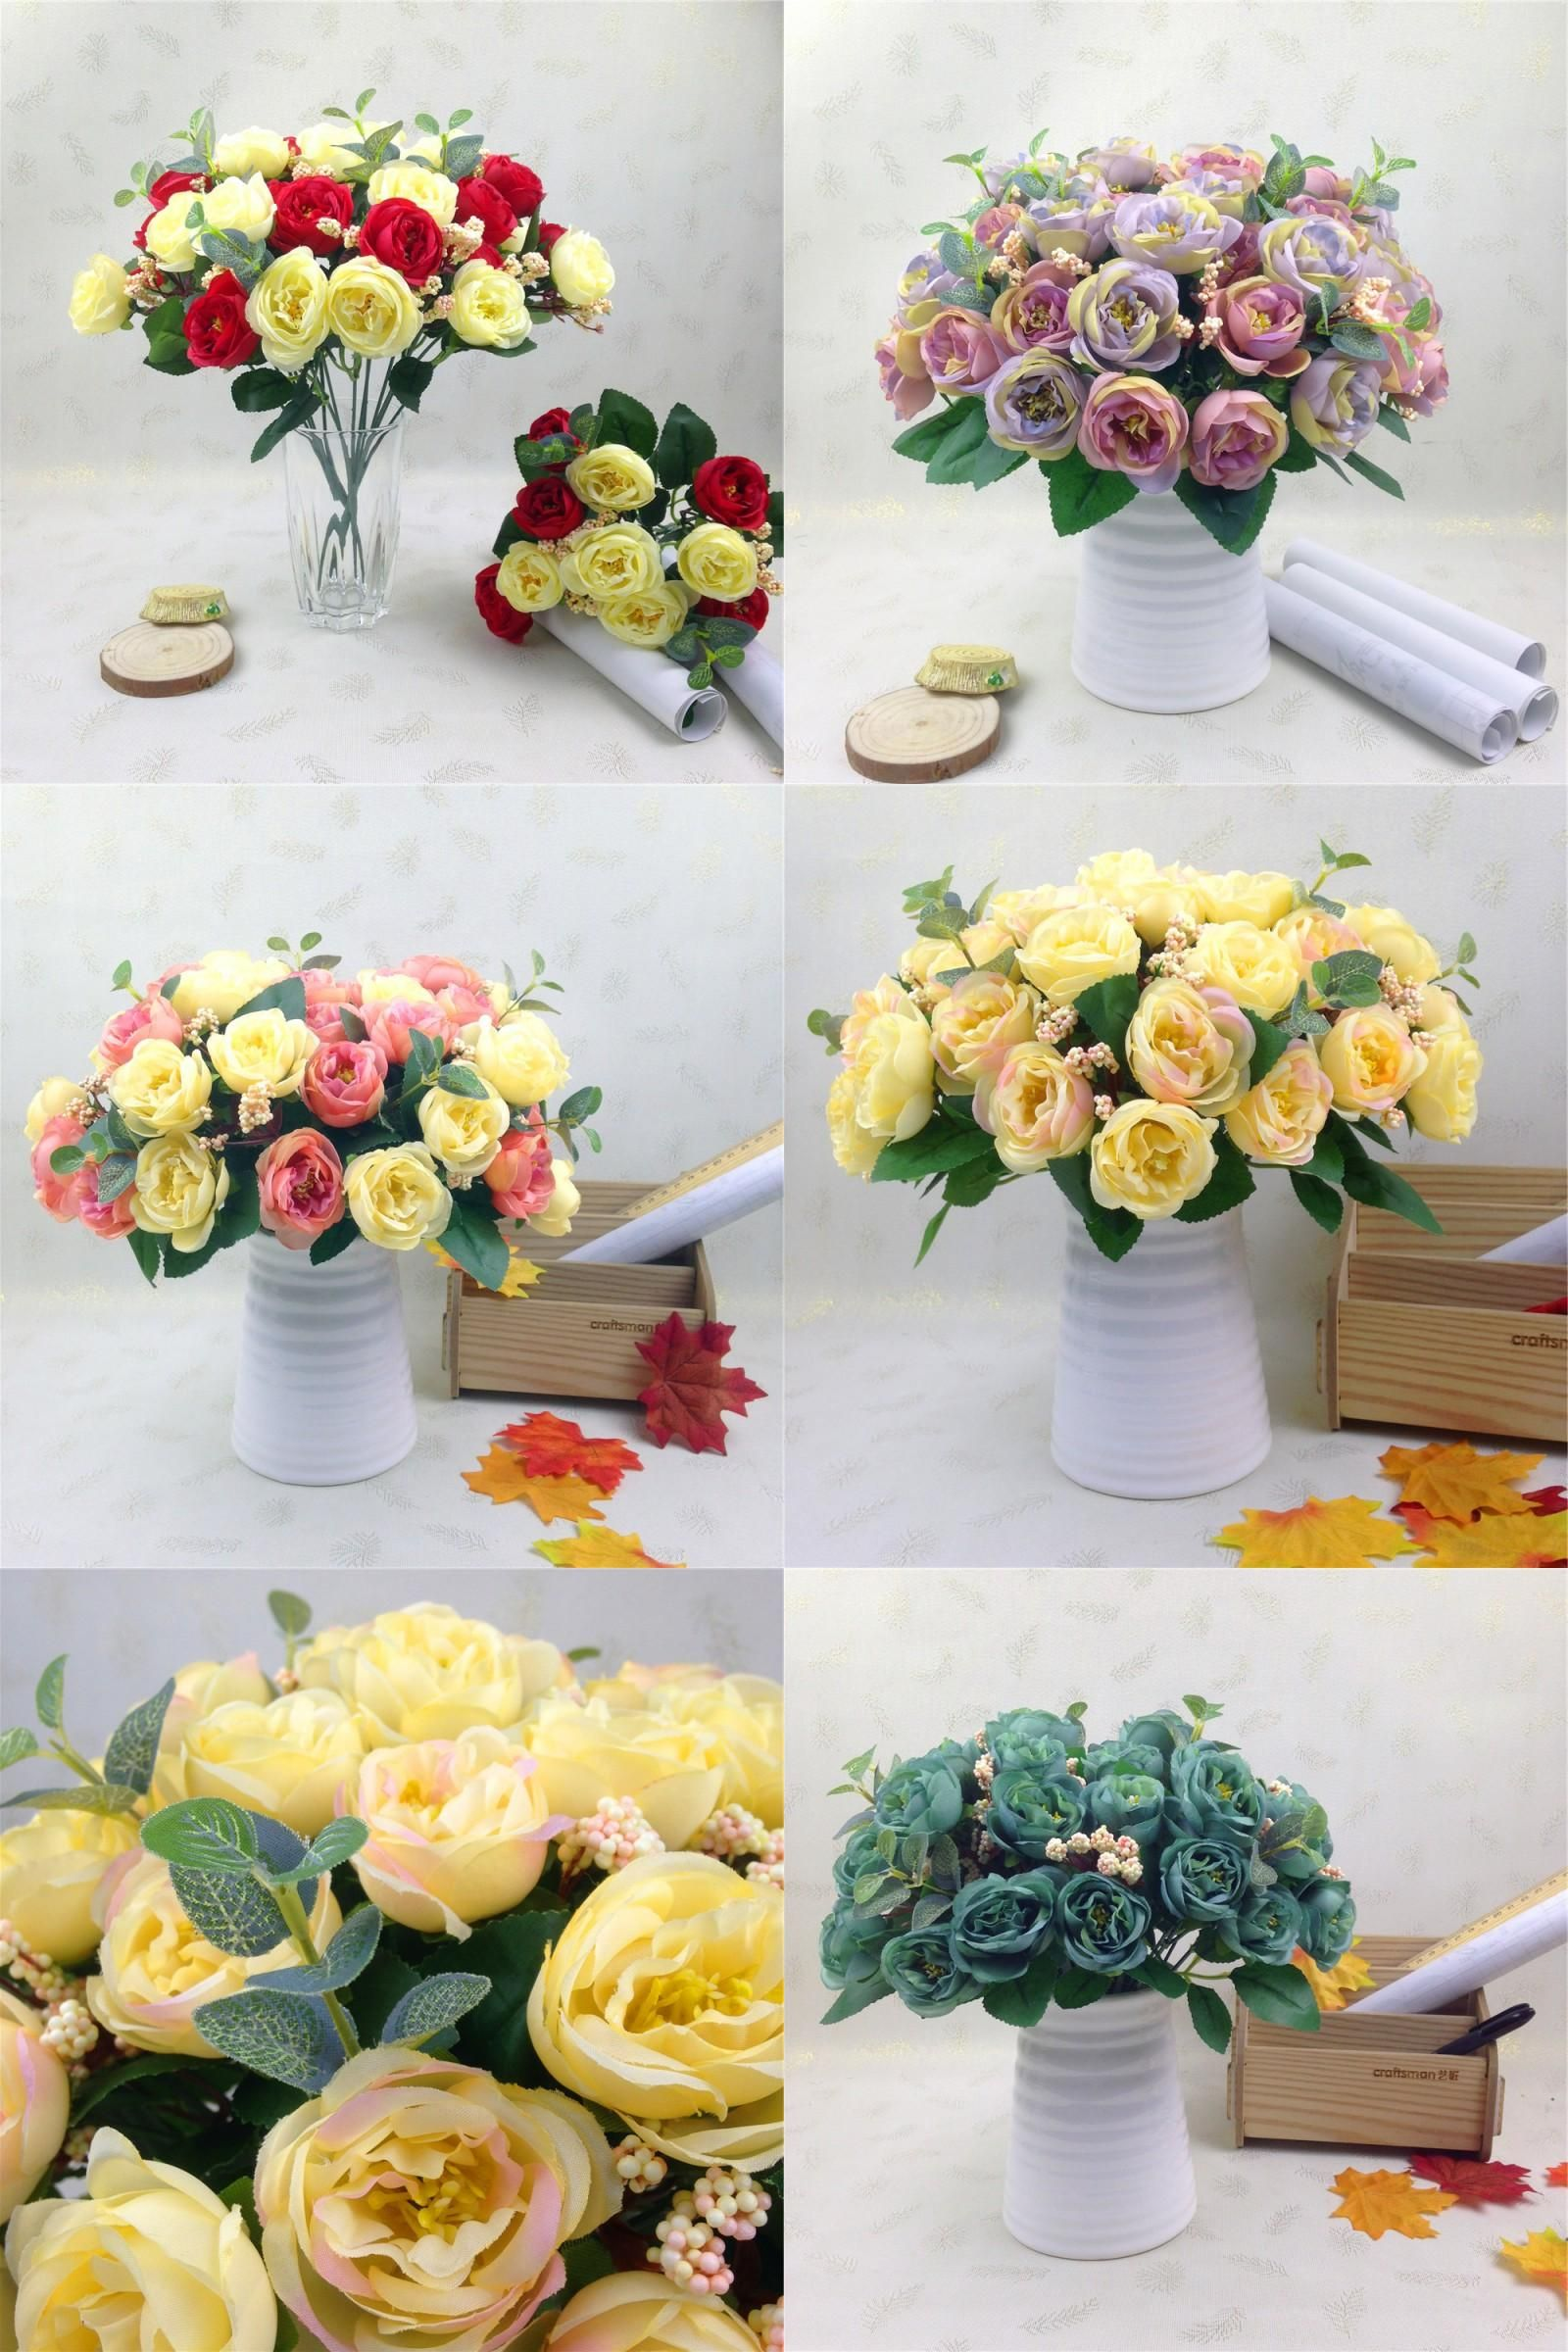 Visit To Buy 10 Pcs Home Party Decorative Flowers Rose Artificial